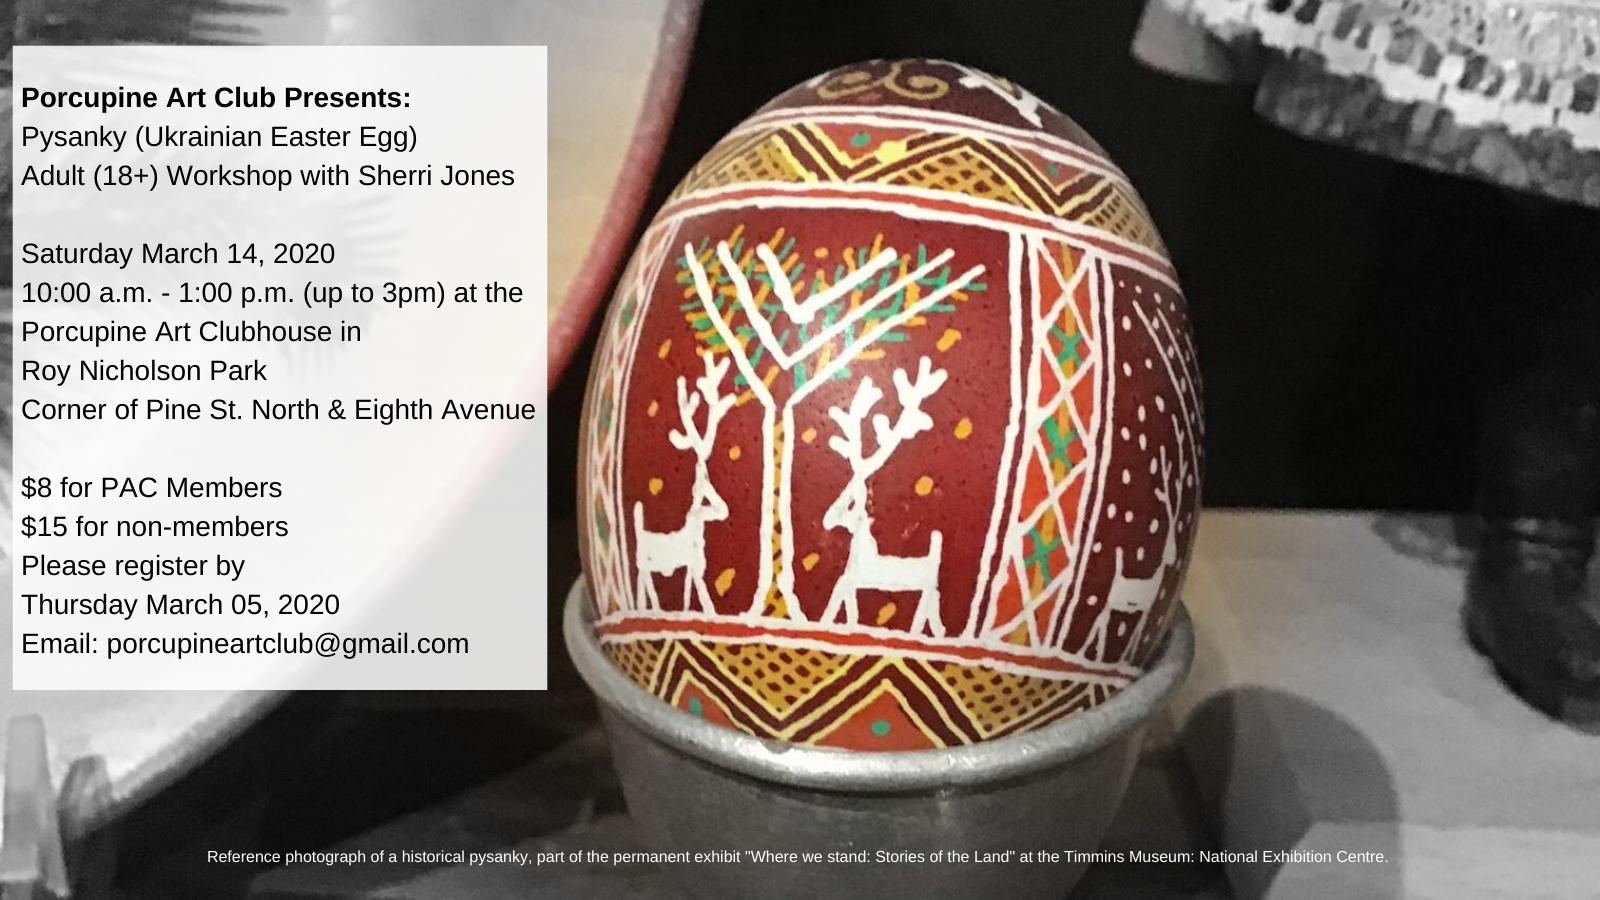 Porcupine Art Club Presents_ Pysanky (Ukrainian Easter Egg) Workshop Saturday March 14, 2020, 10_00 a.m. - 2_00 p.m. $8 for PAC Members_ $15 for non-members Please register by Thursday March 05, 2020